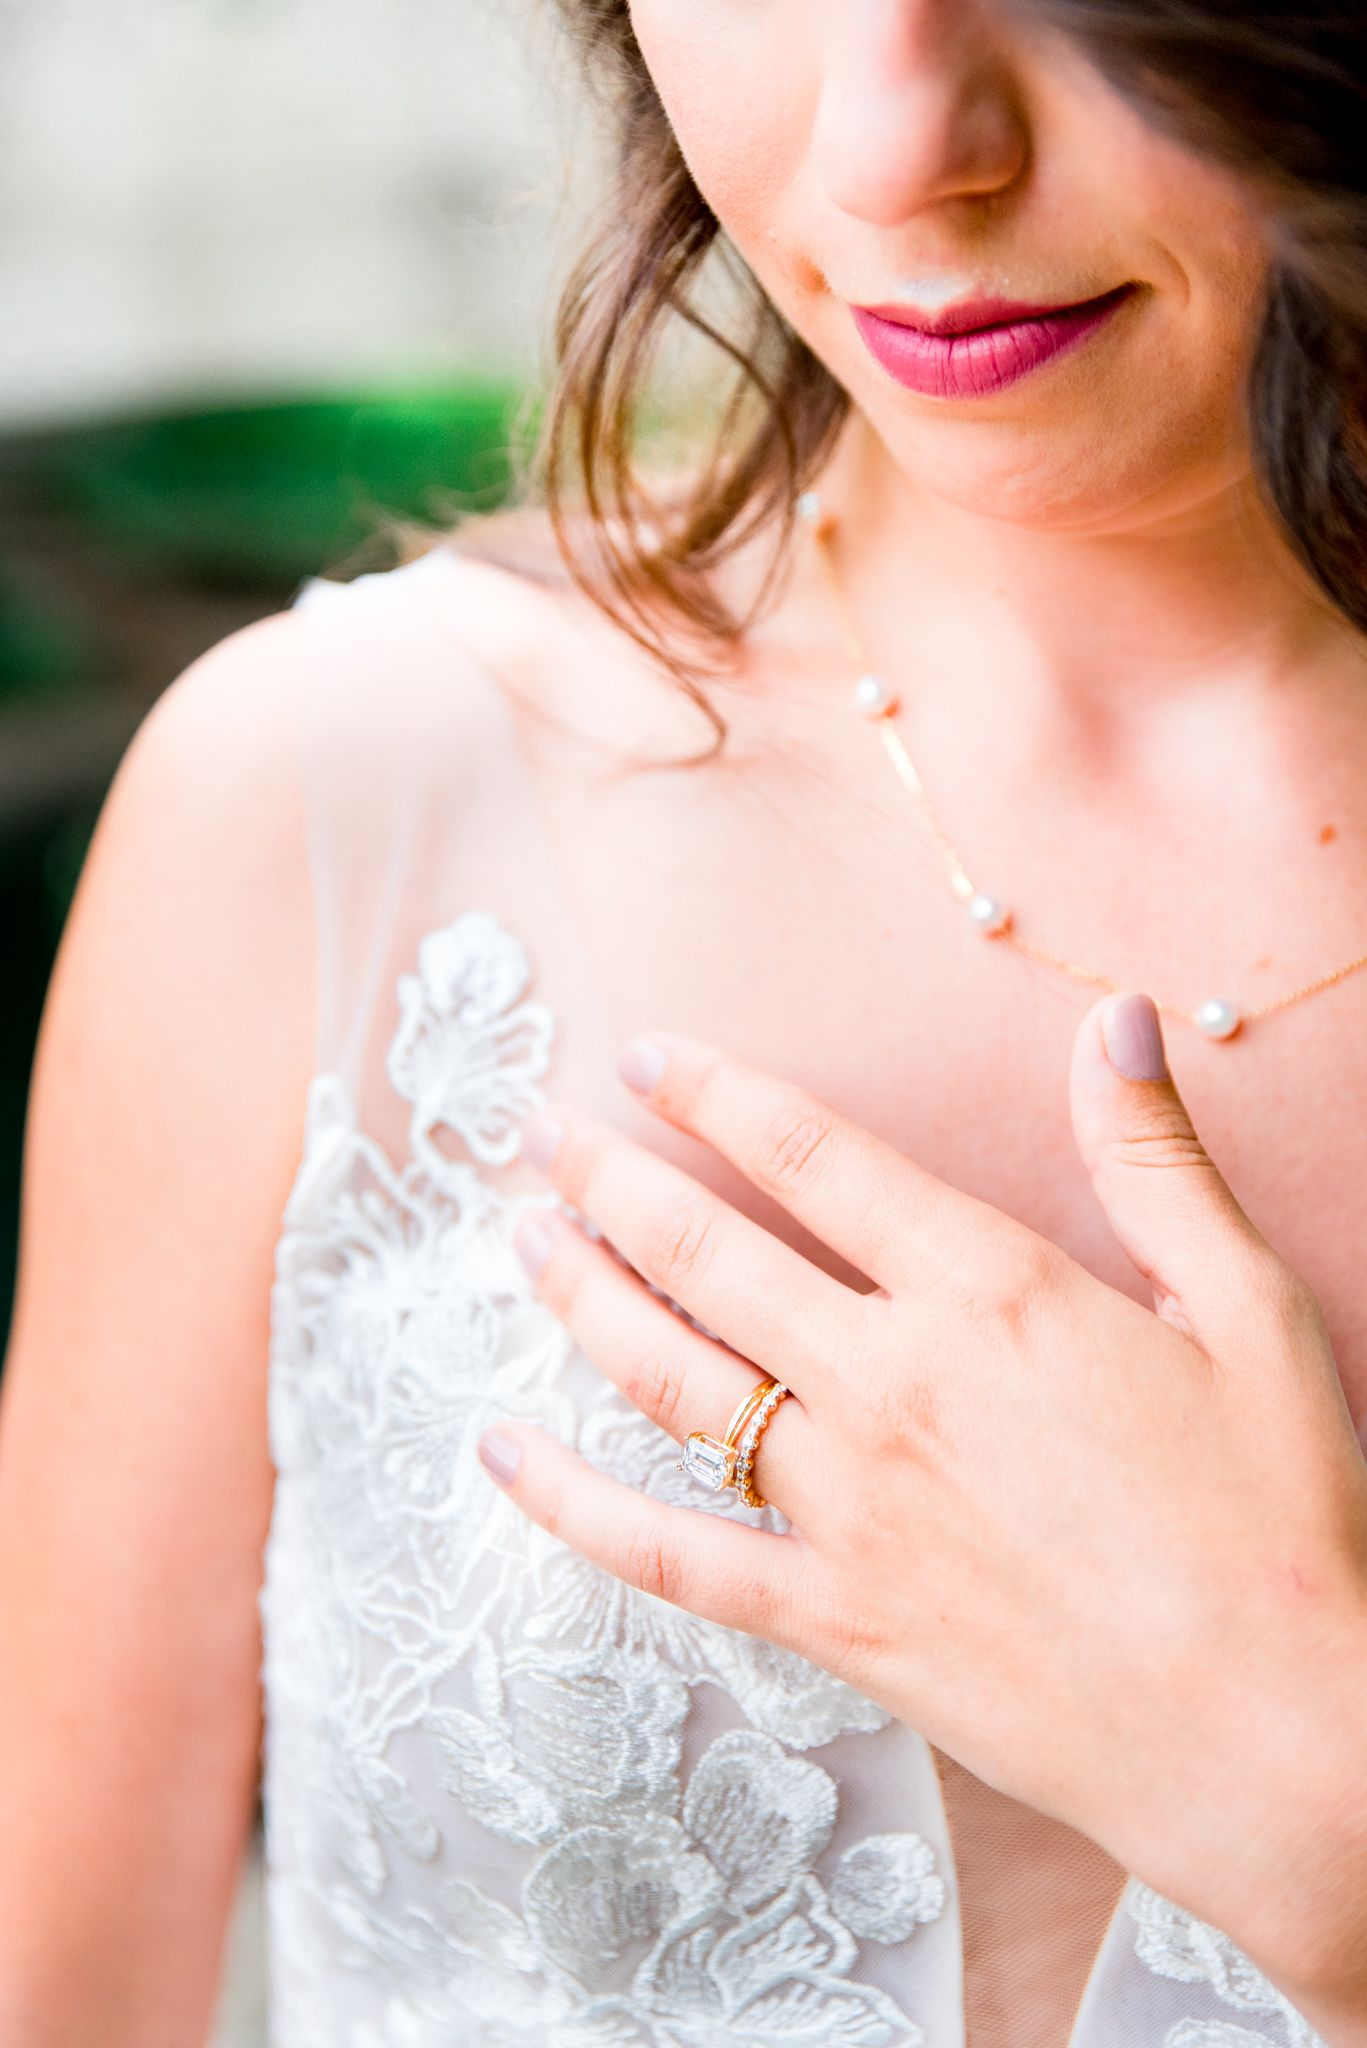 details of bride's lipstick, wedding dress, necklace, and engagement and wedding rings